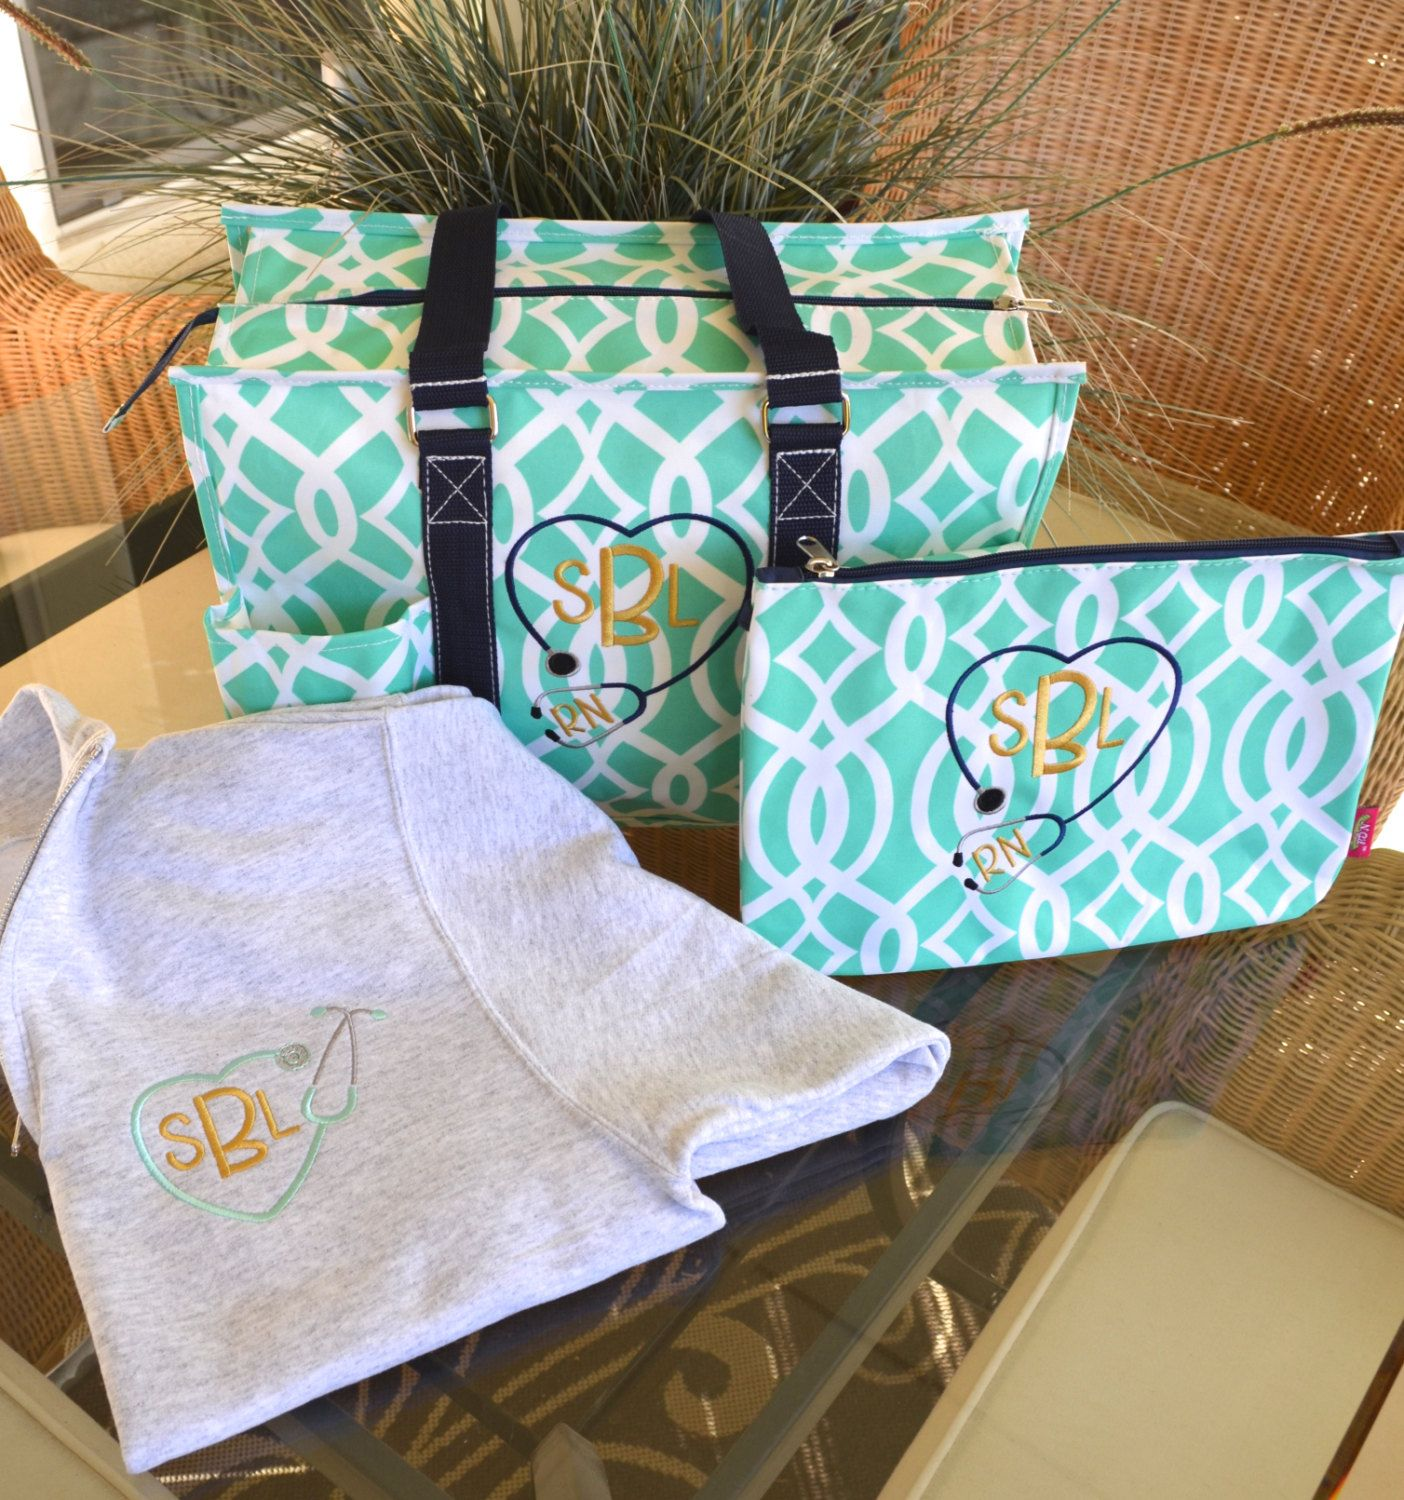 Nurse S Tote Bag Set 16 1 4 Zip Pullover Monogrammed 2 Day Shipping By Schedinstyle1 On Etsy